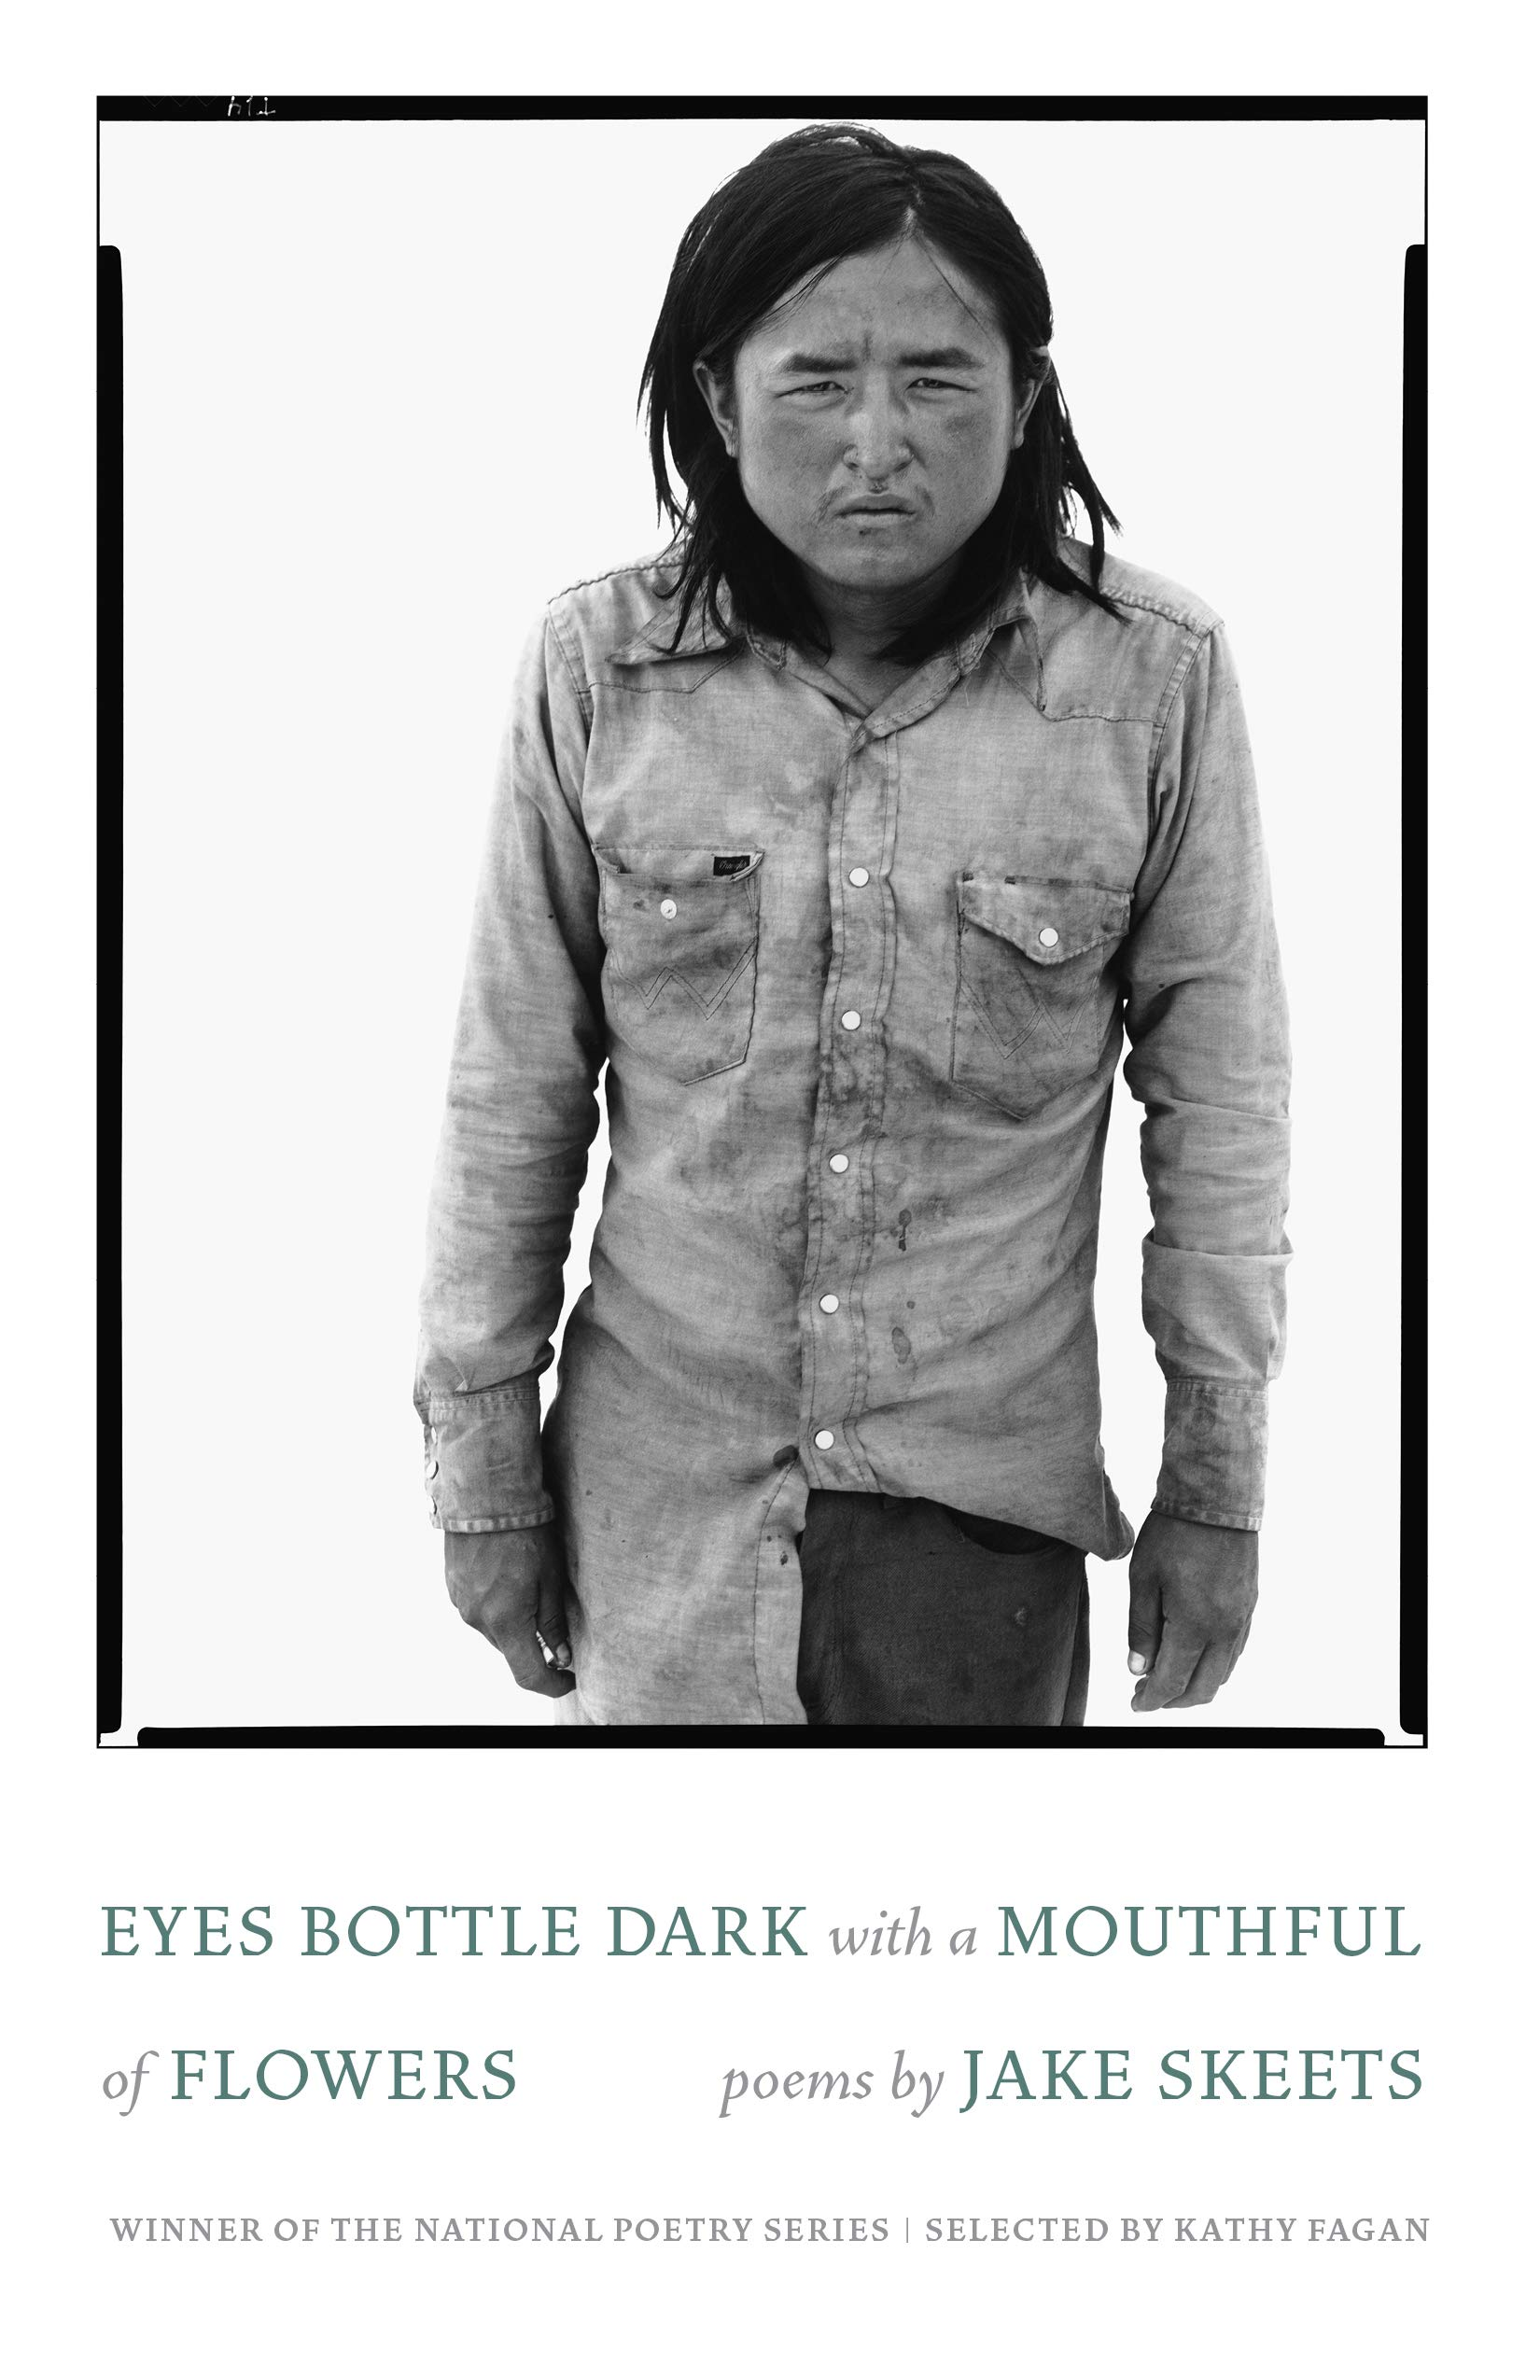 Eyes bottle dark with a mouthful of flowers book cover